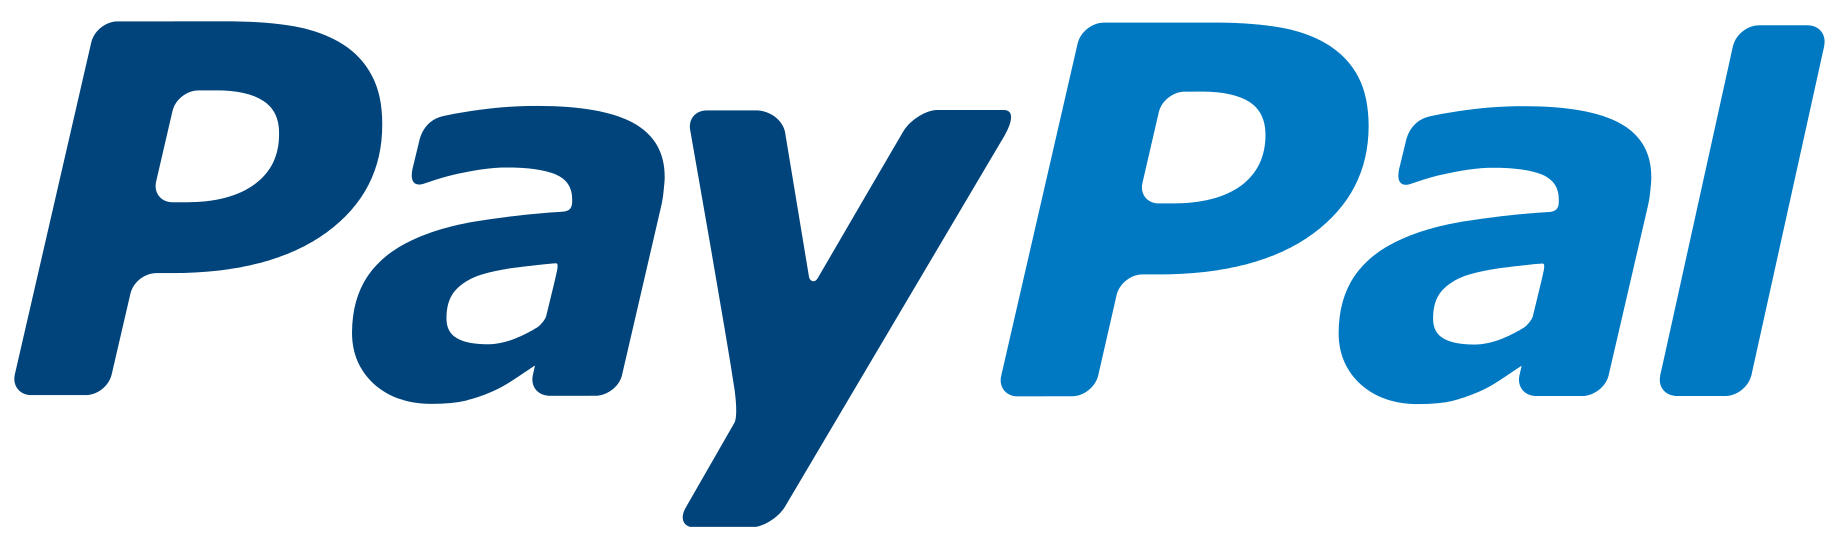 how to call paypal for free